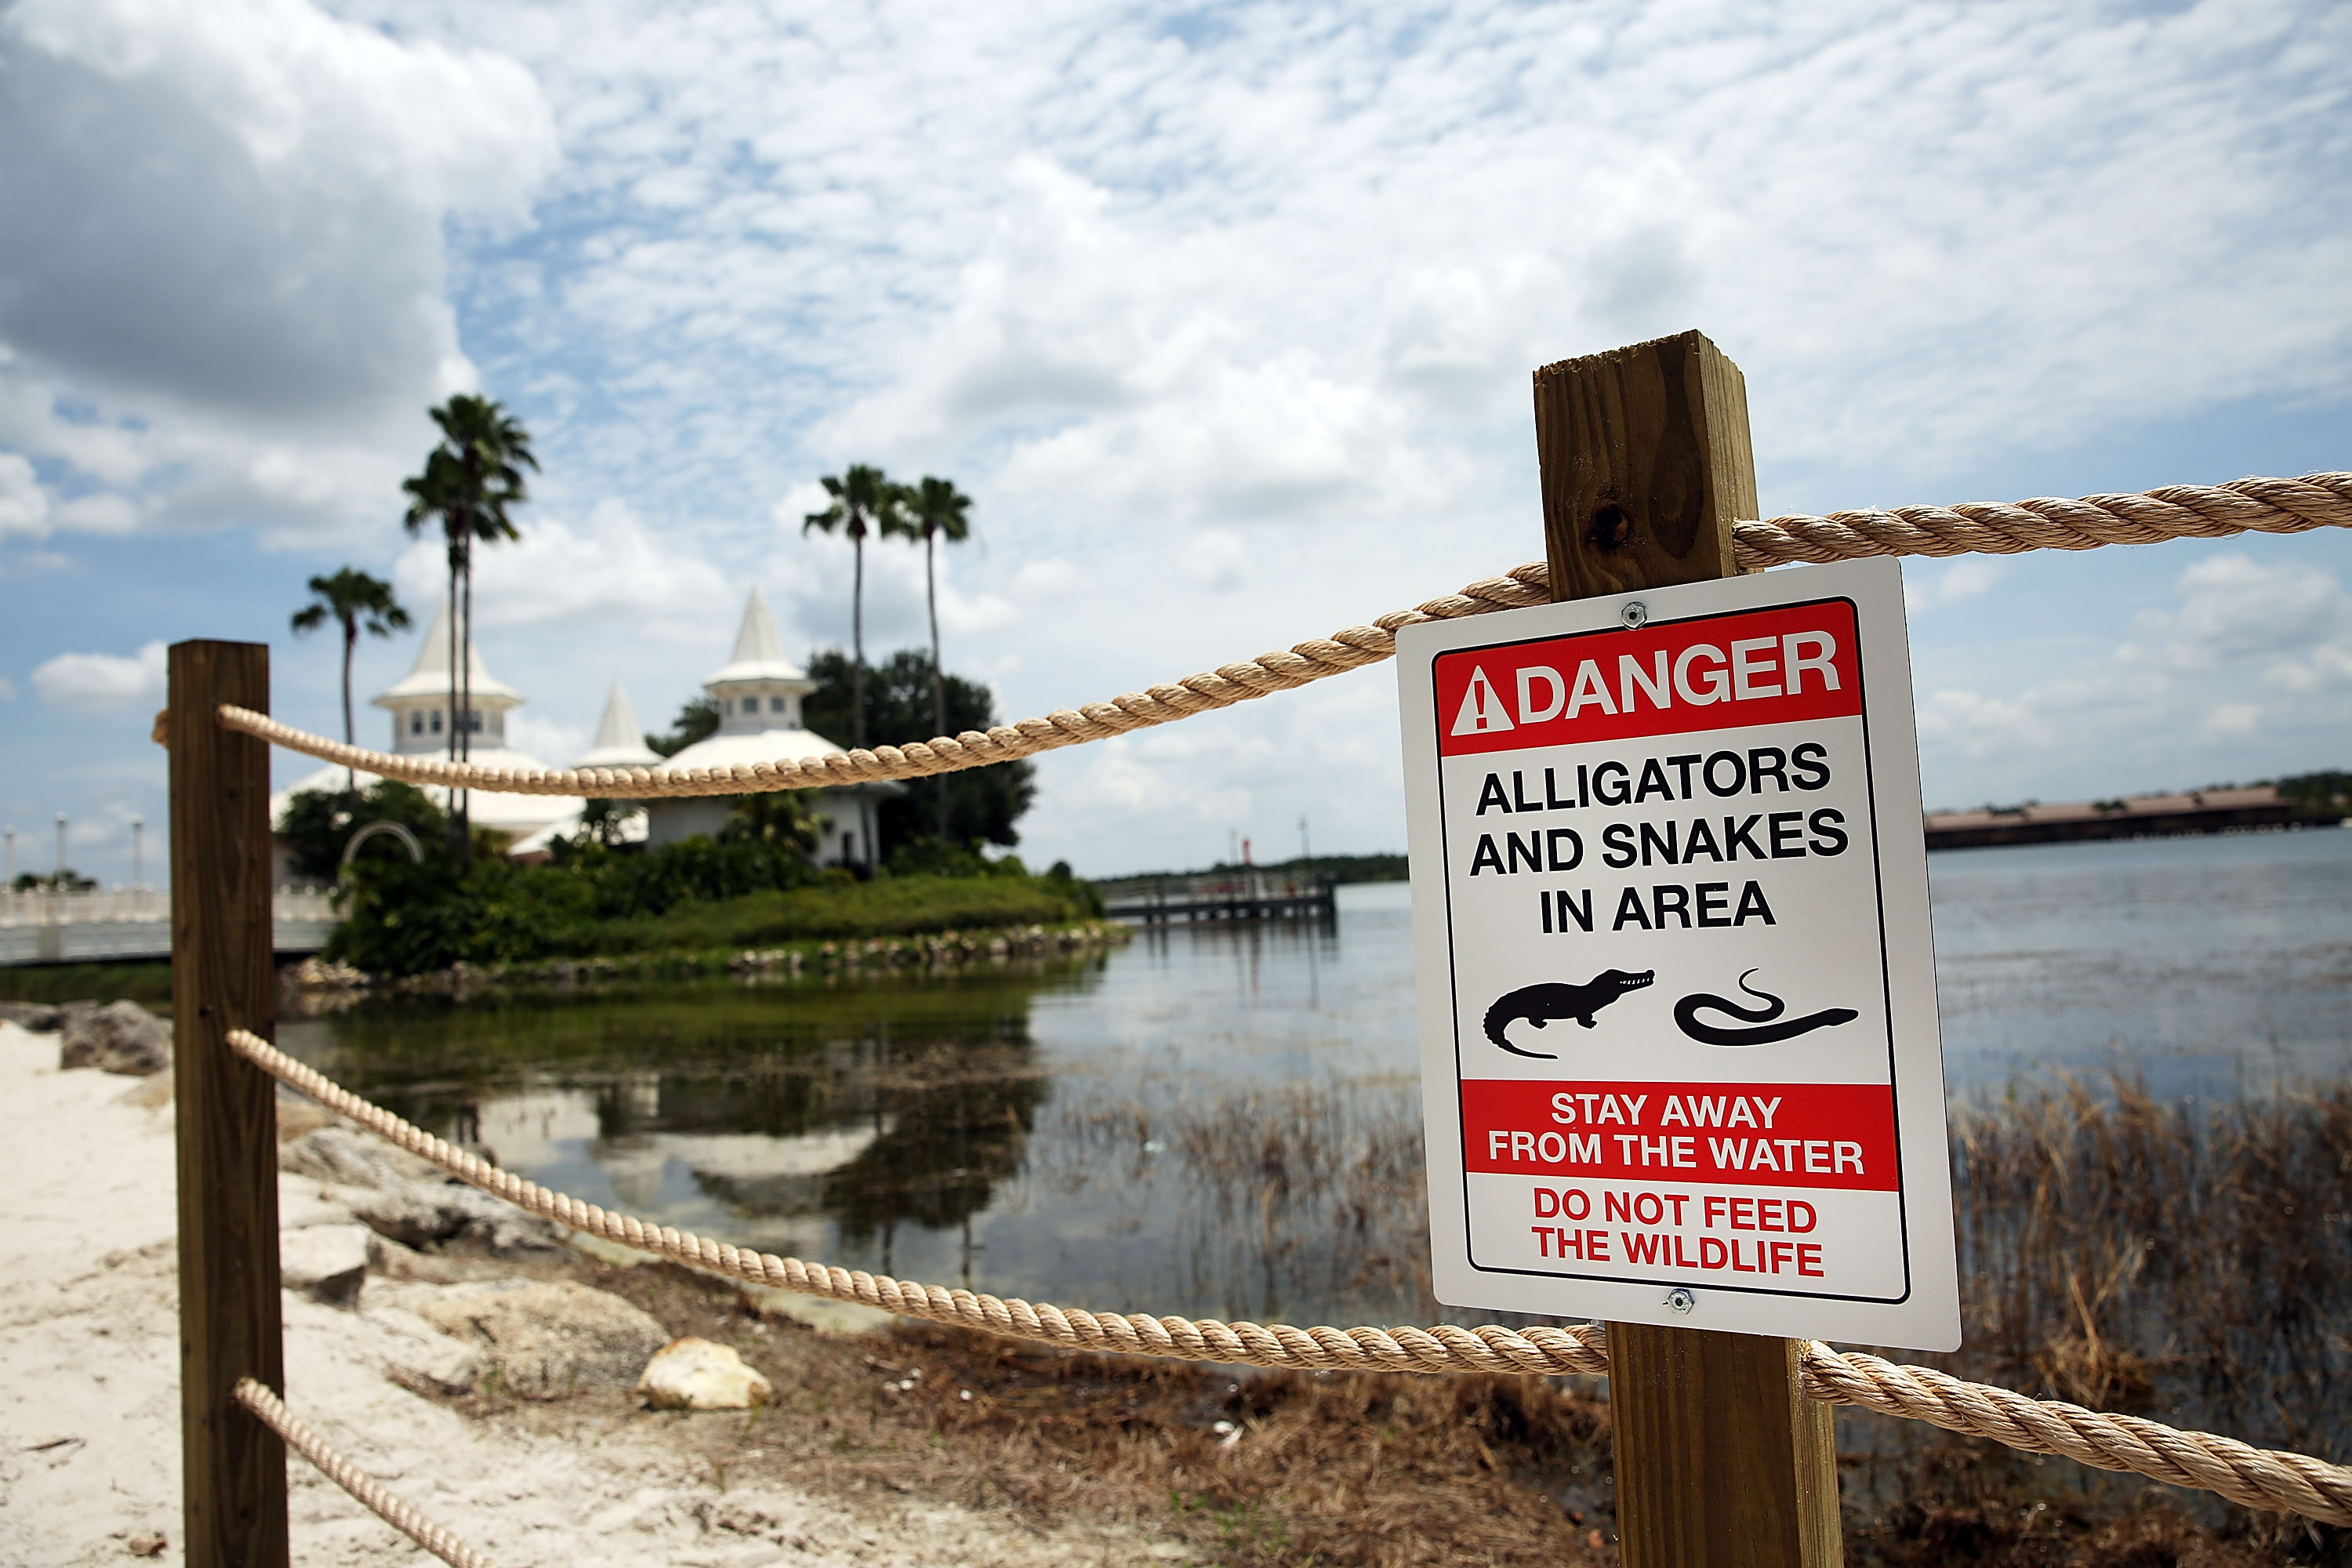 Newly installed signs warn of alligators and snakes on a closed section of beach following the death of a 2-year-old boy who was killed by an alligator near a Walt Disney World hotel on June 18, 2016 in Orlando, Florida.